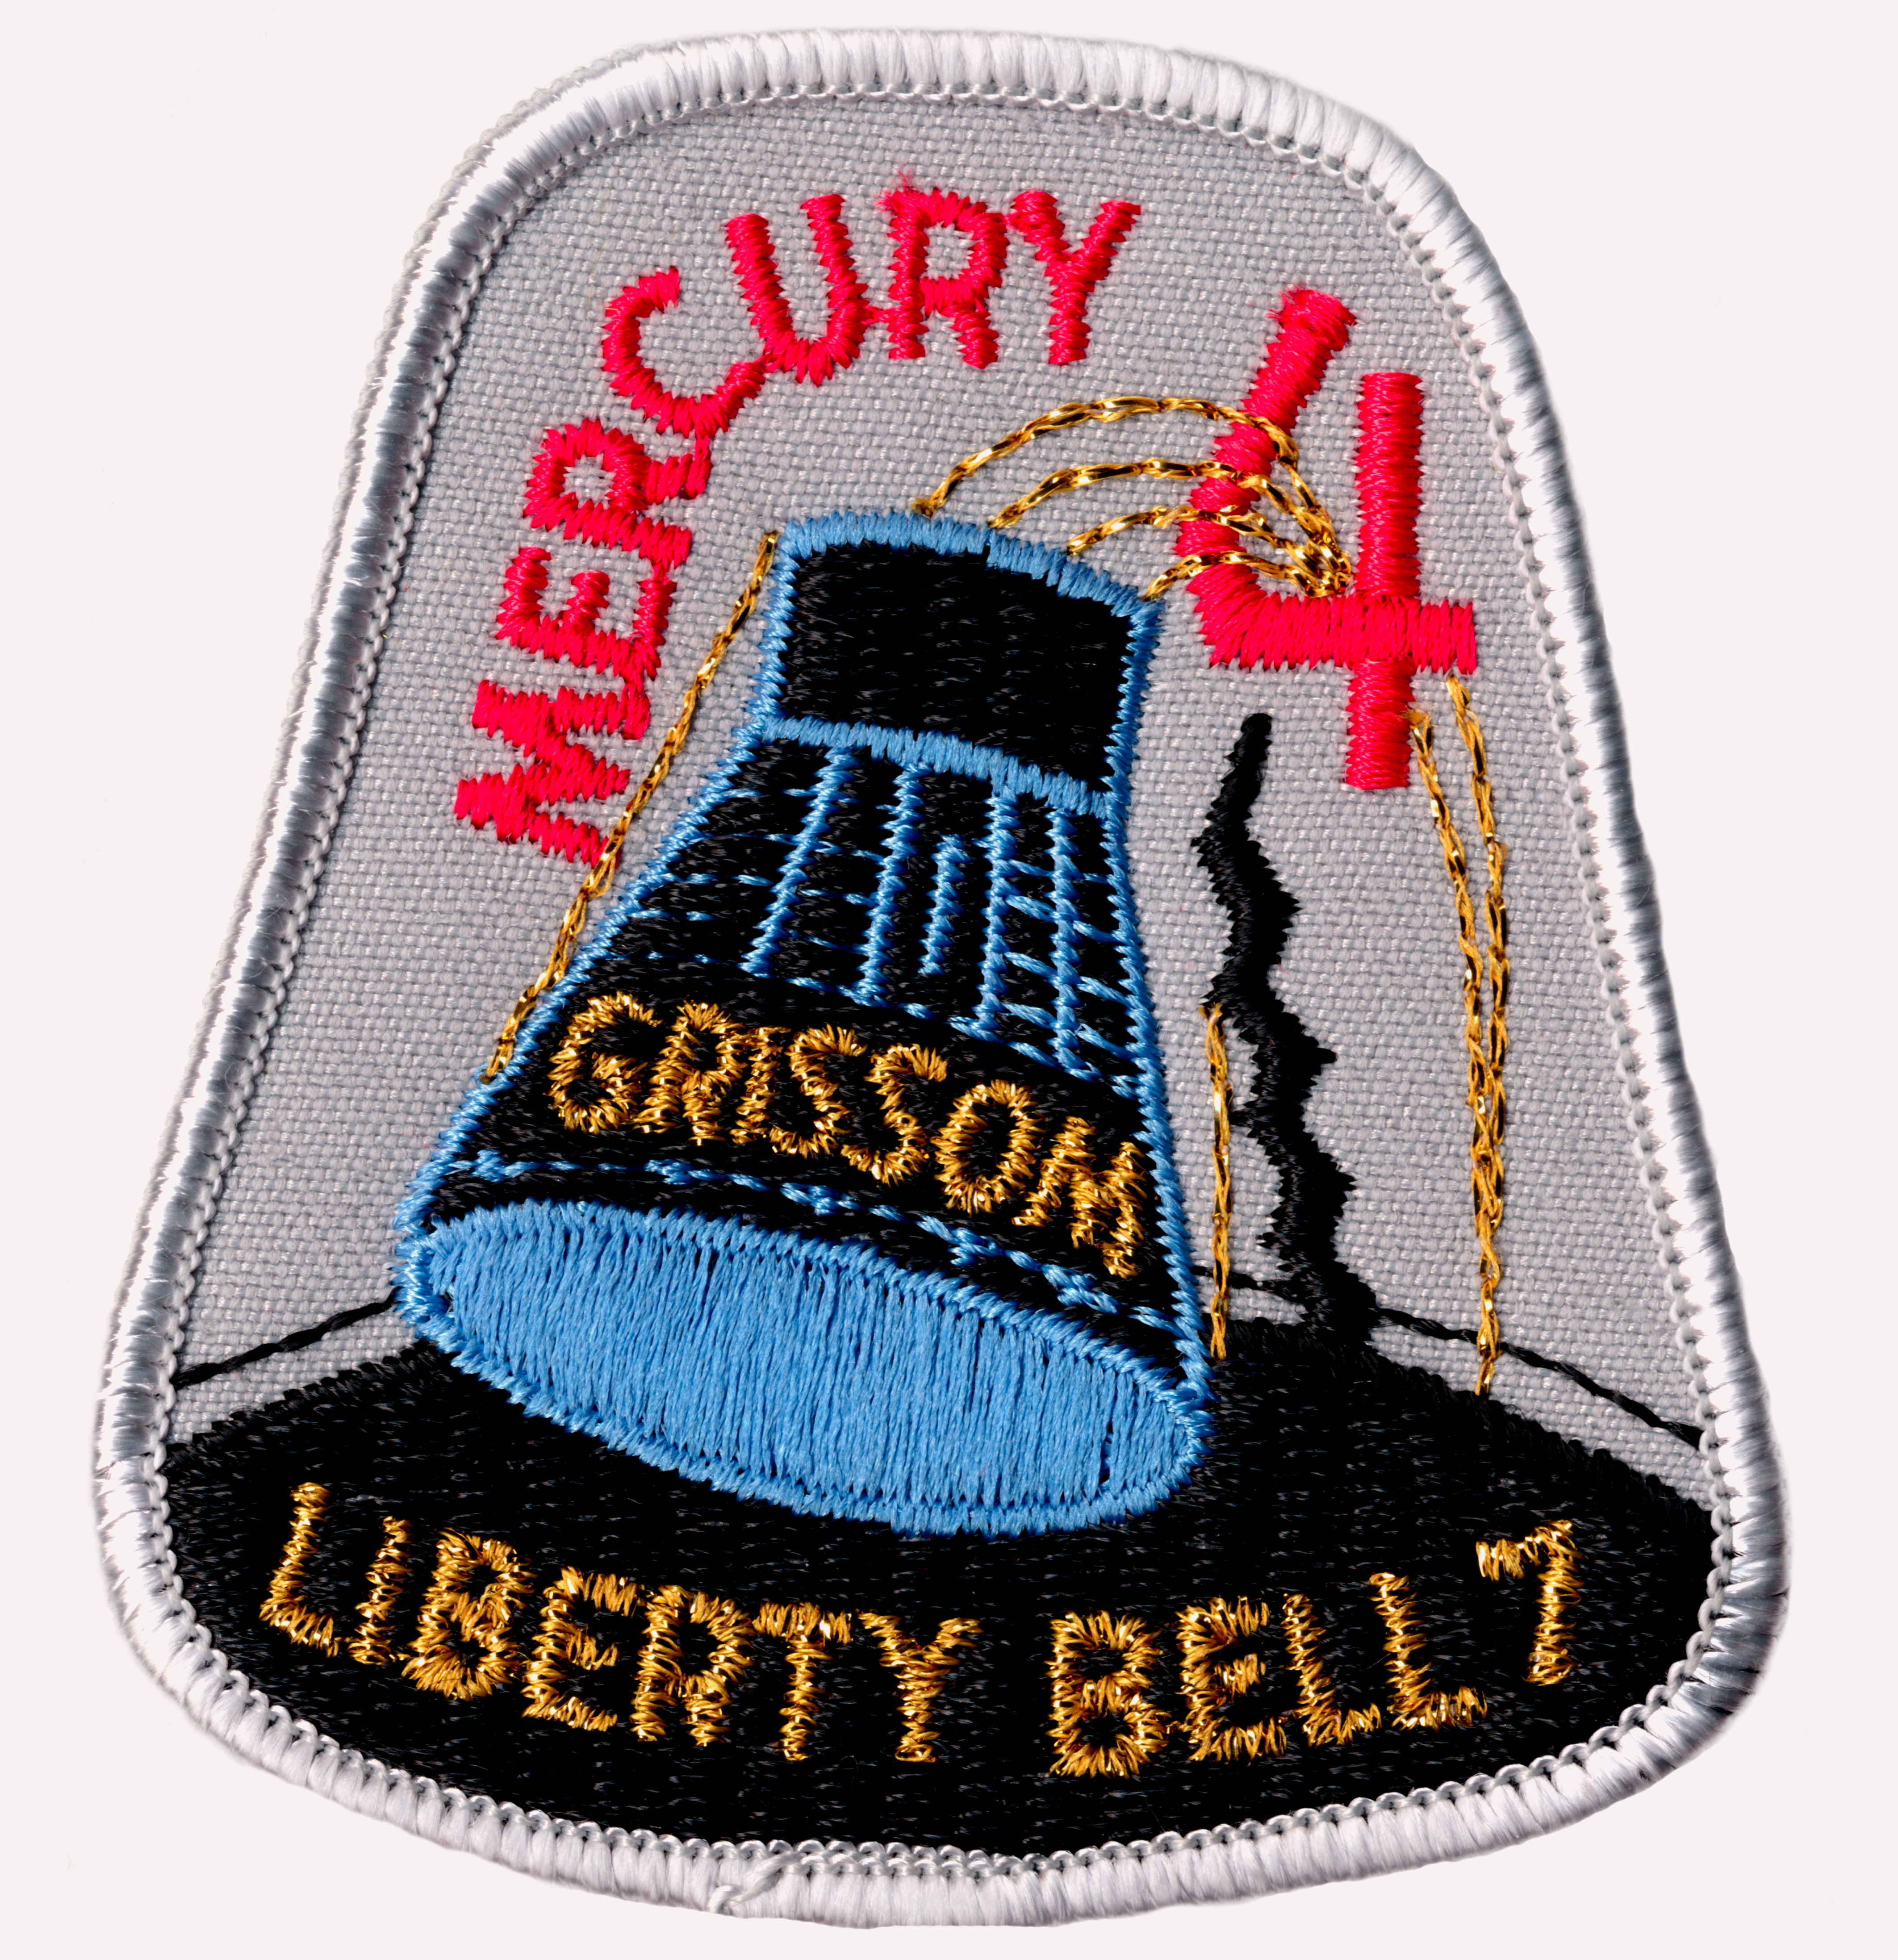 Mercury Mission Patches (page 2) - Pics about space